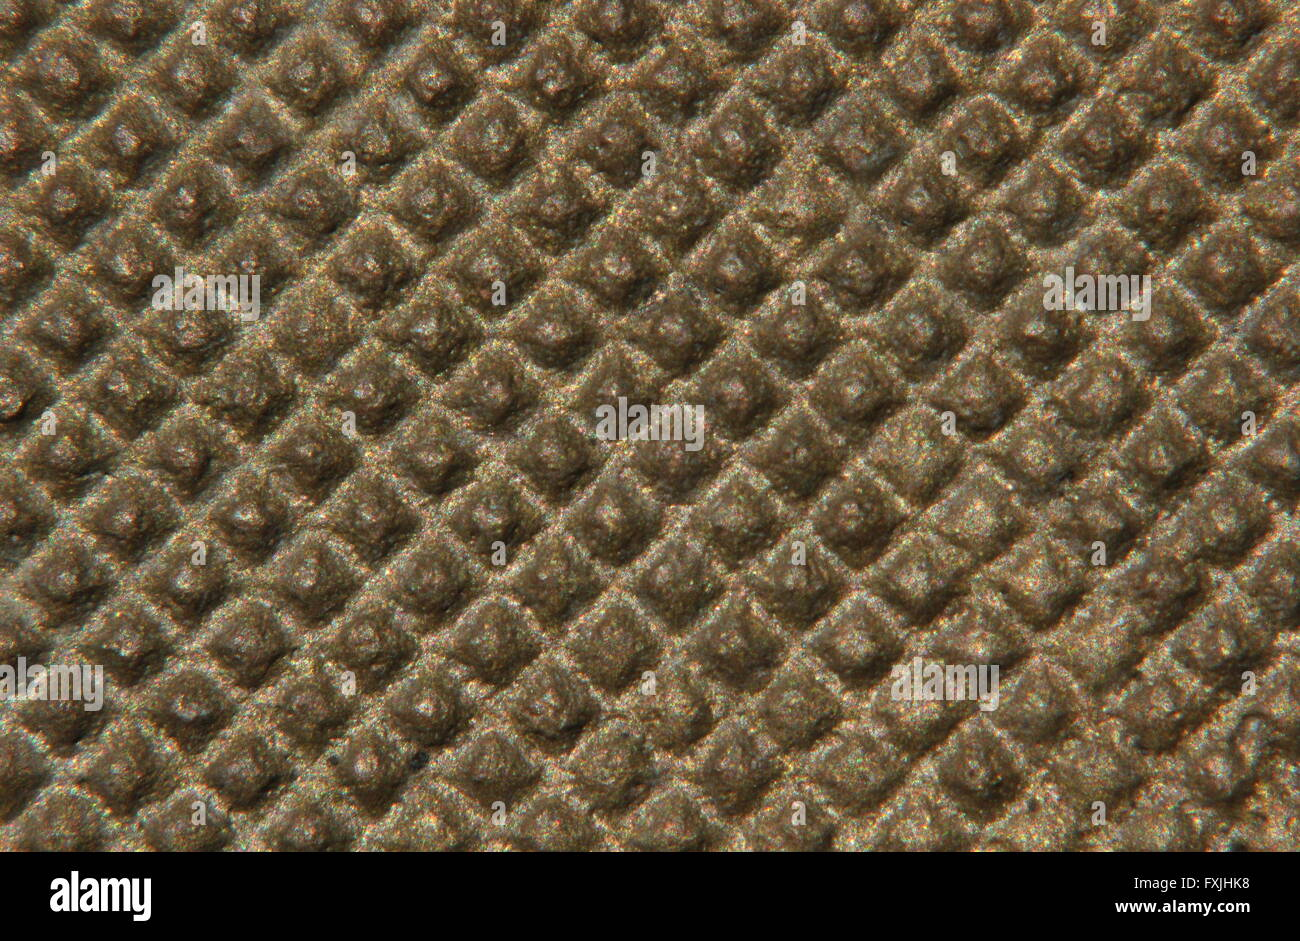 Close-up of a nubby metal surface. - Stock Image